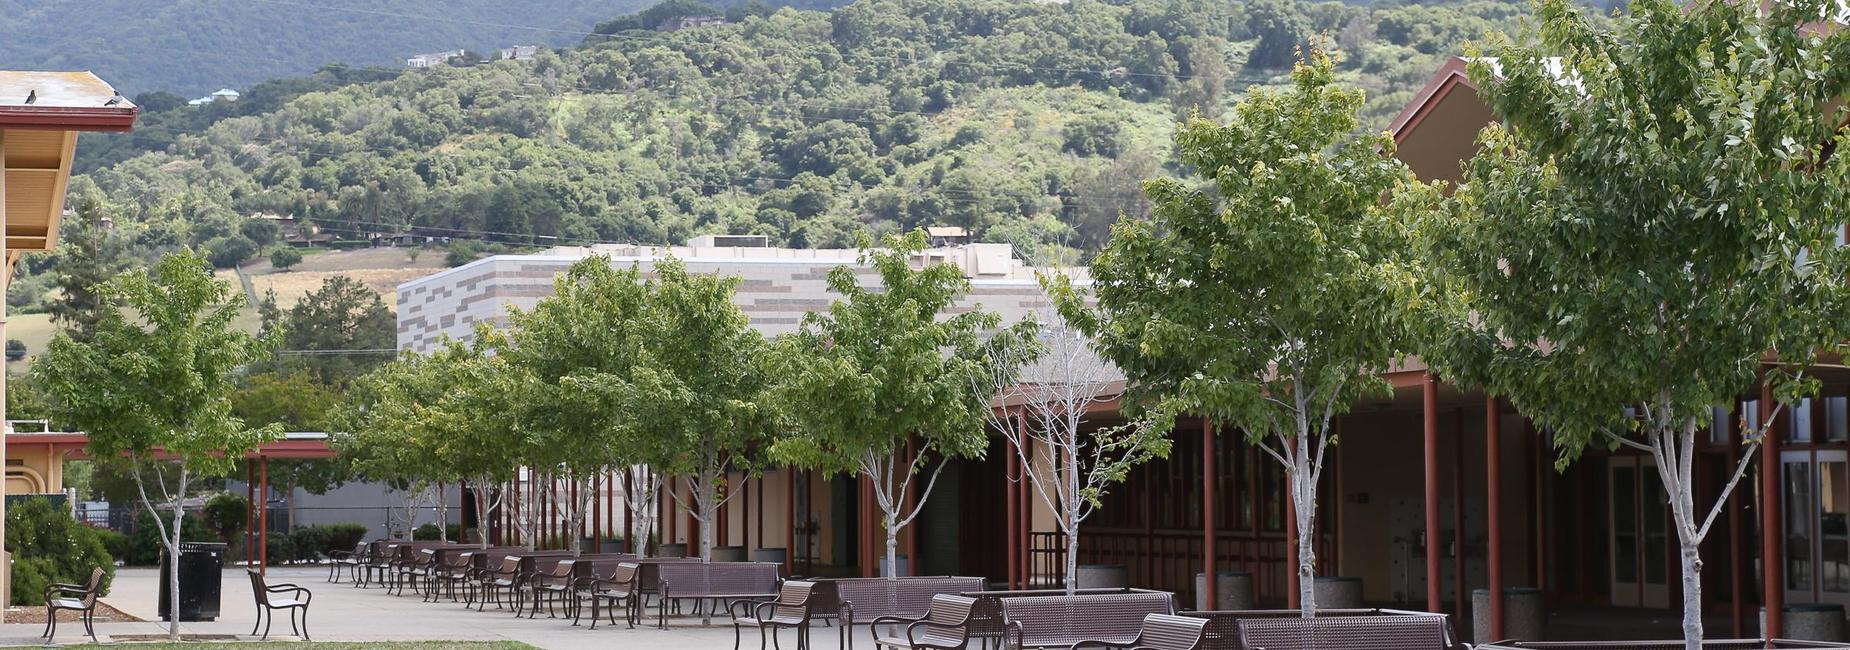 Cafeteria, PAC, and the hillside